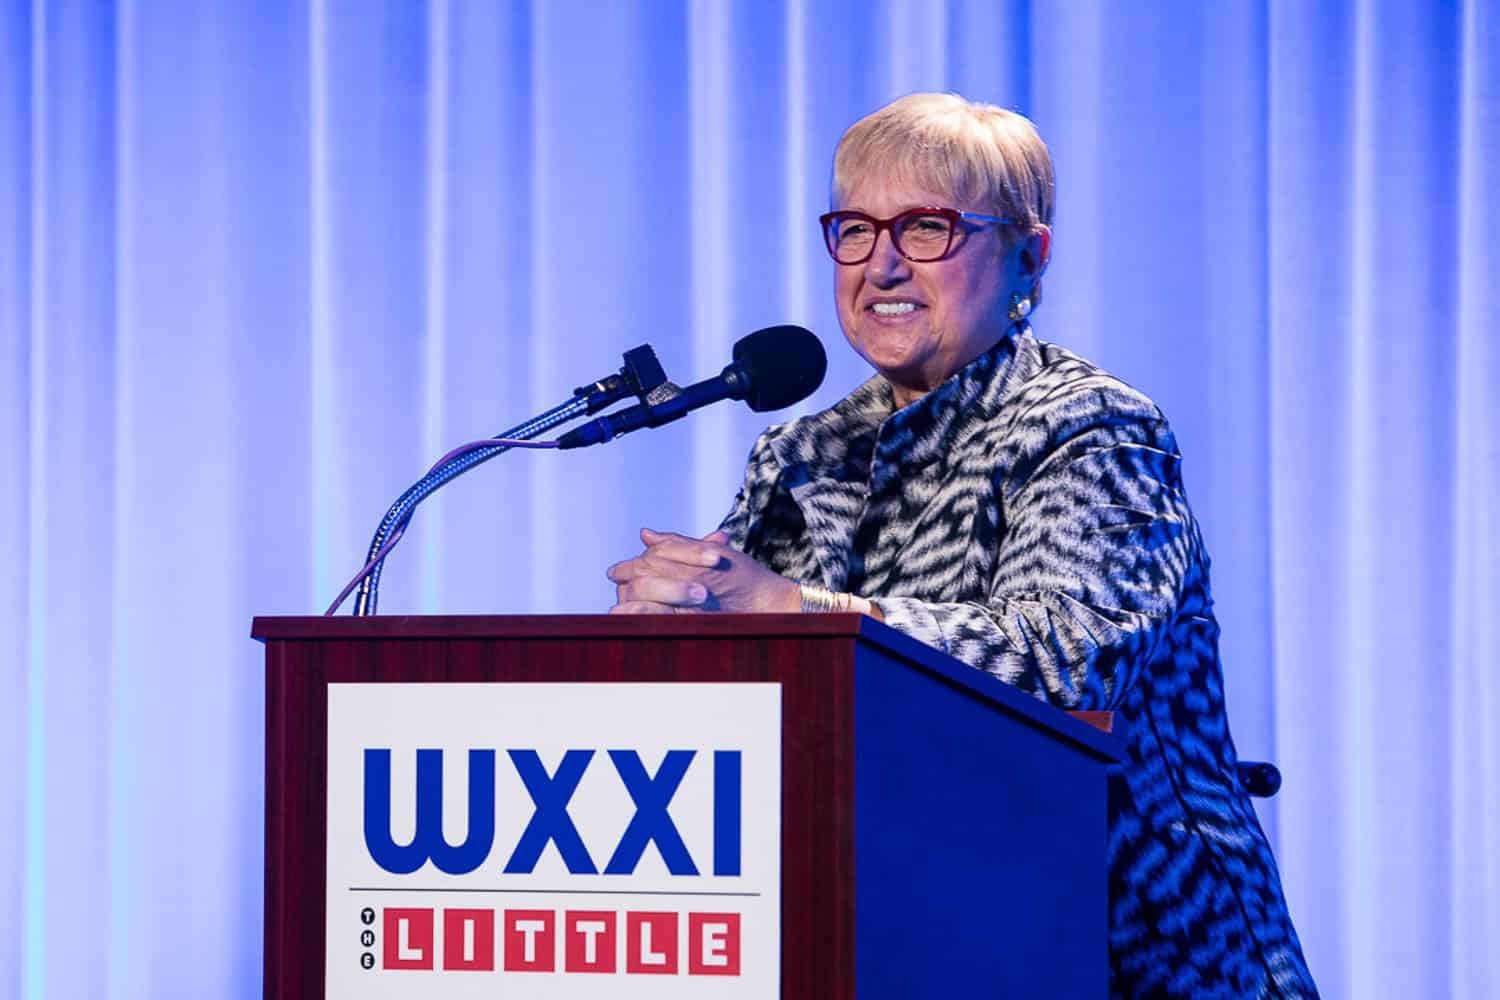 Photo of lidia bastianich speaking at wxxi event.